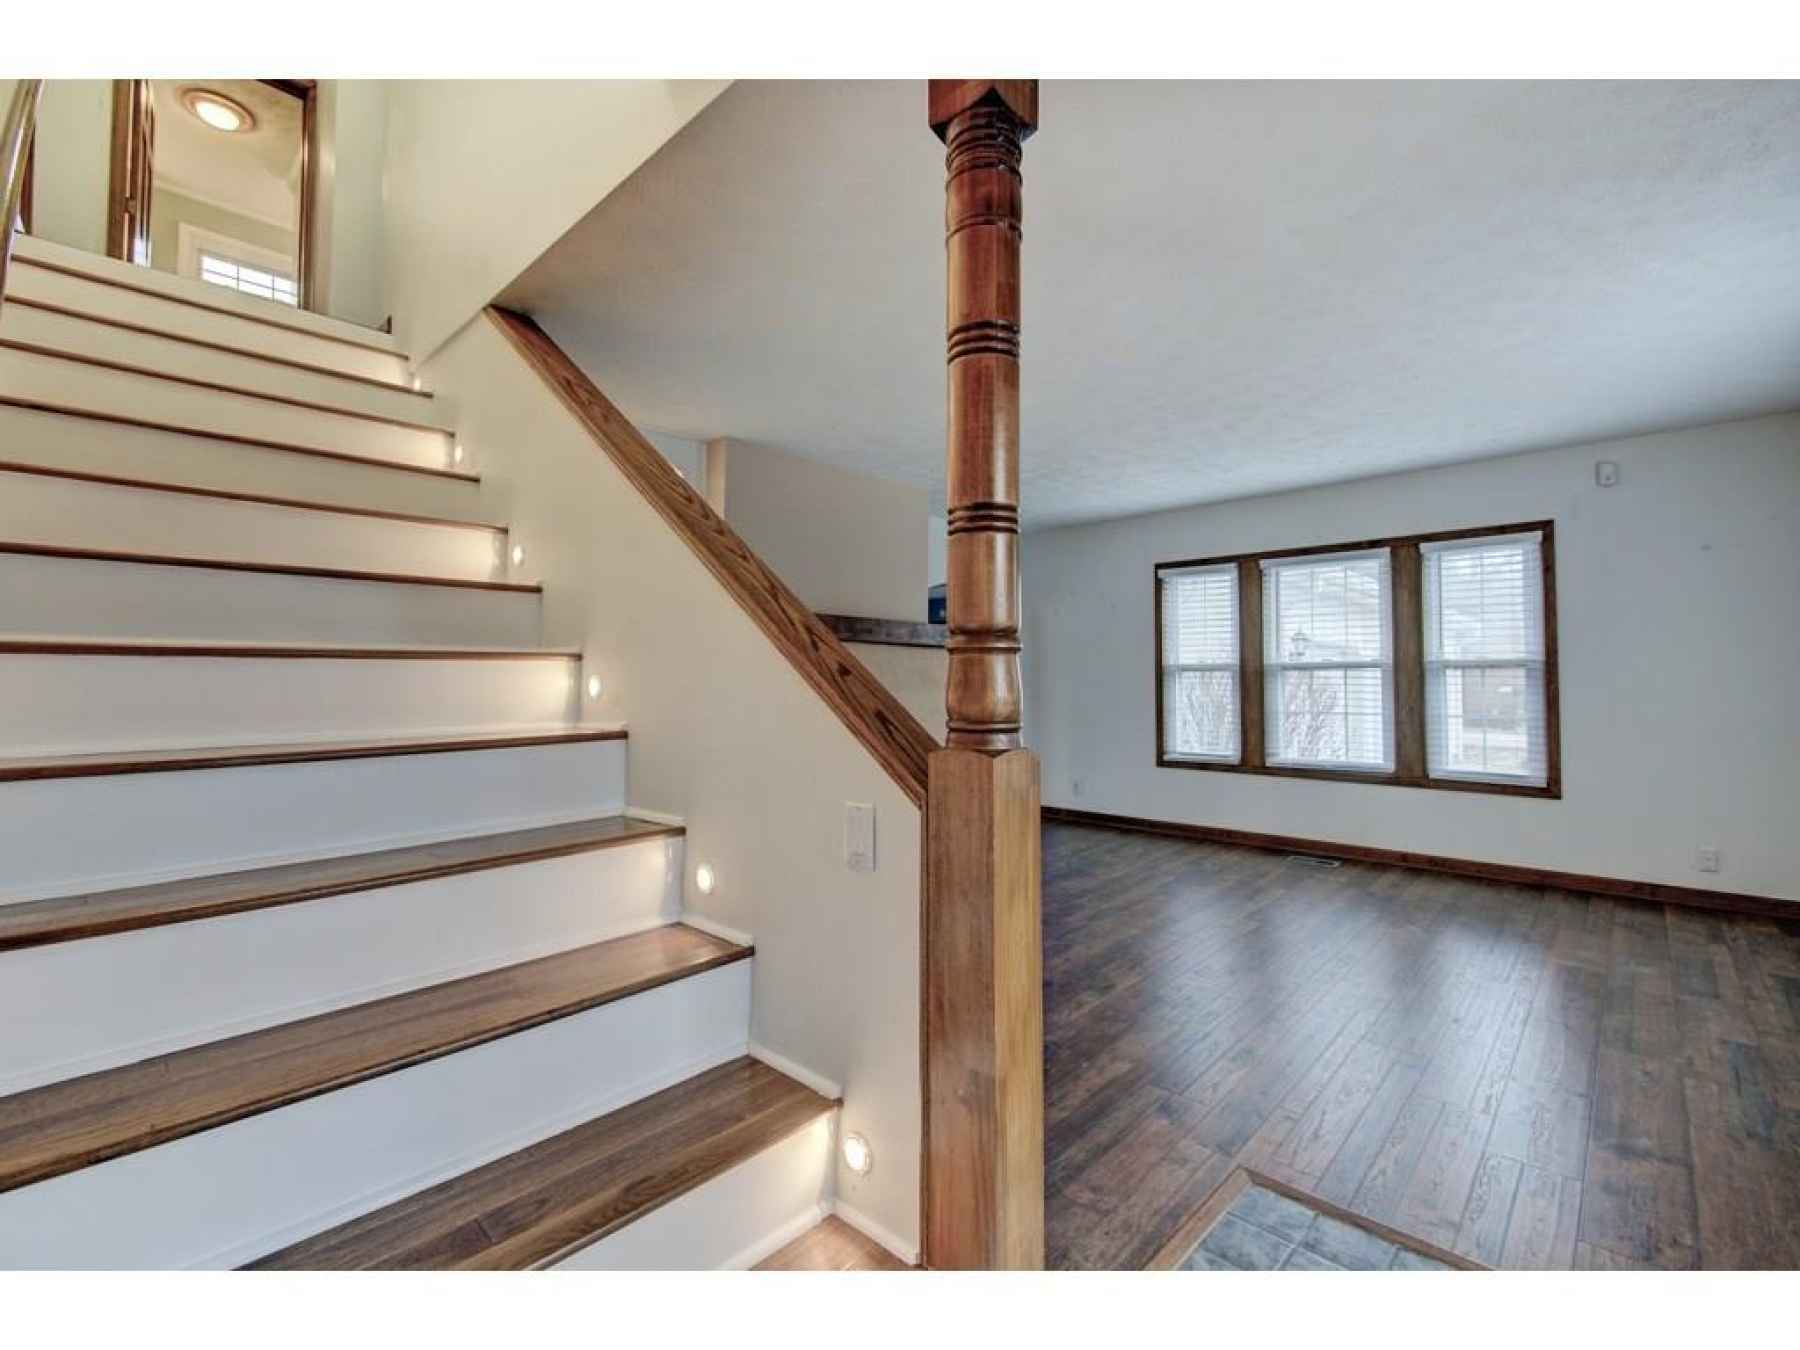 Entryway with extra wide staircase. All new flooring up and down.